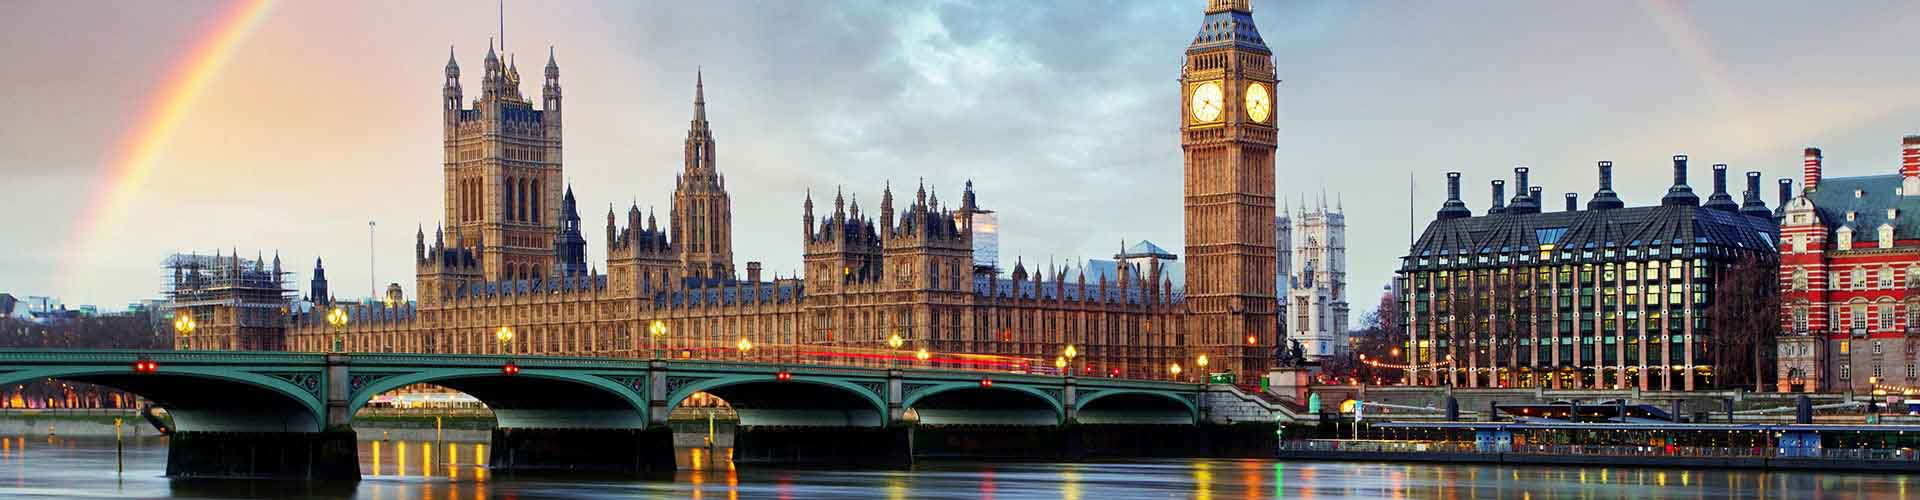 London – Hotels in Borough of Westminster. Maps of London, Photos and Reviews for each Hotel in London.